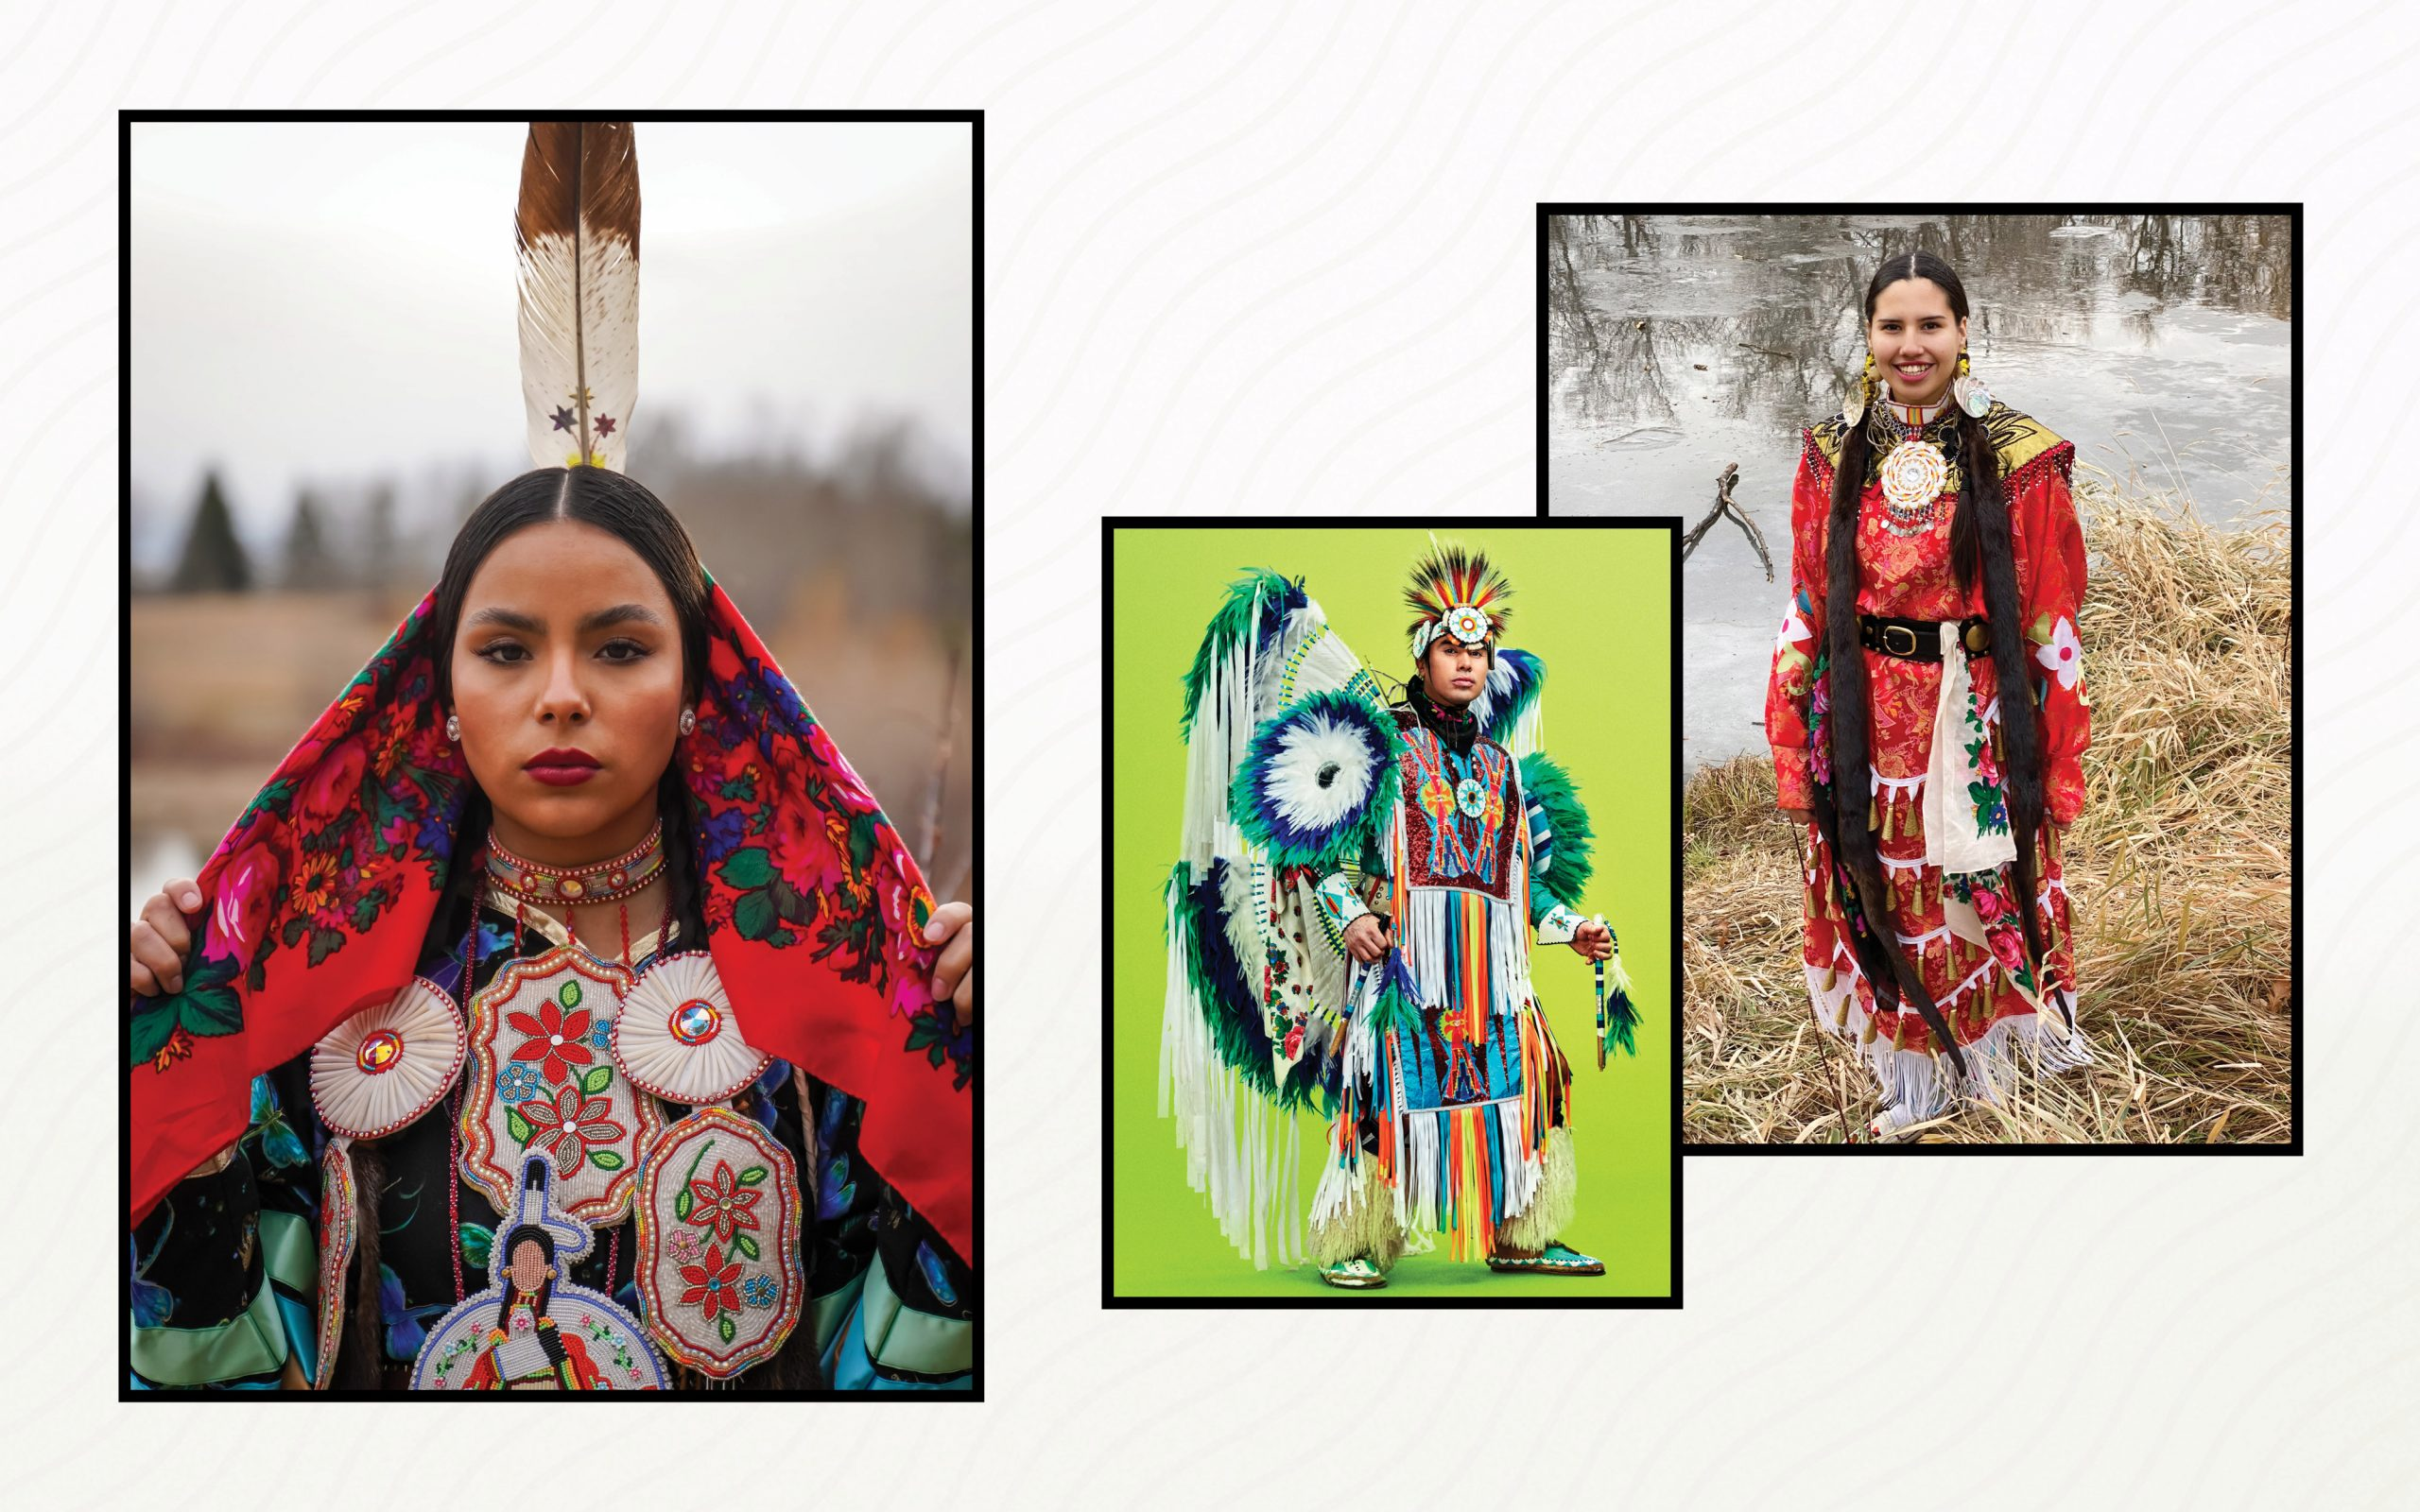 Indigenous Regalia Finds New Audience and Appreciation on TikTok